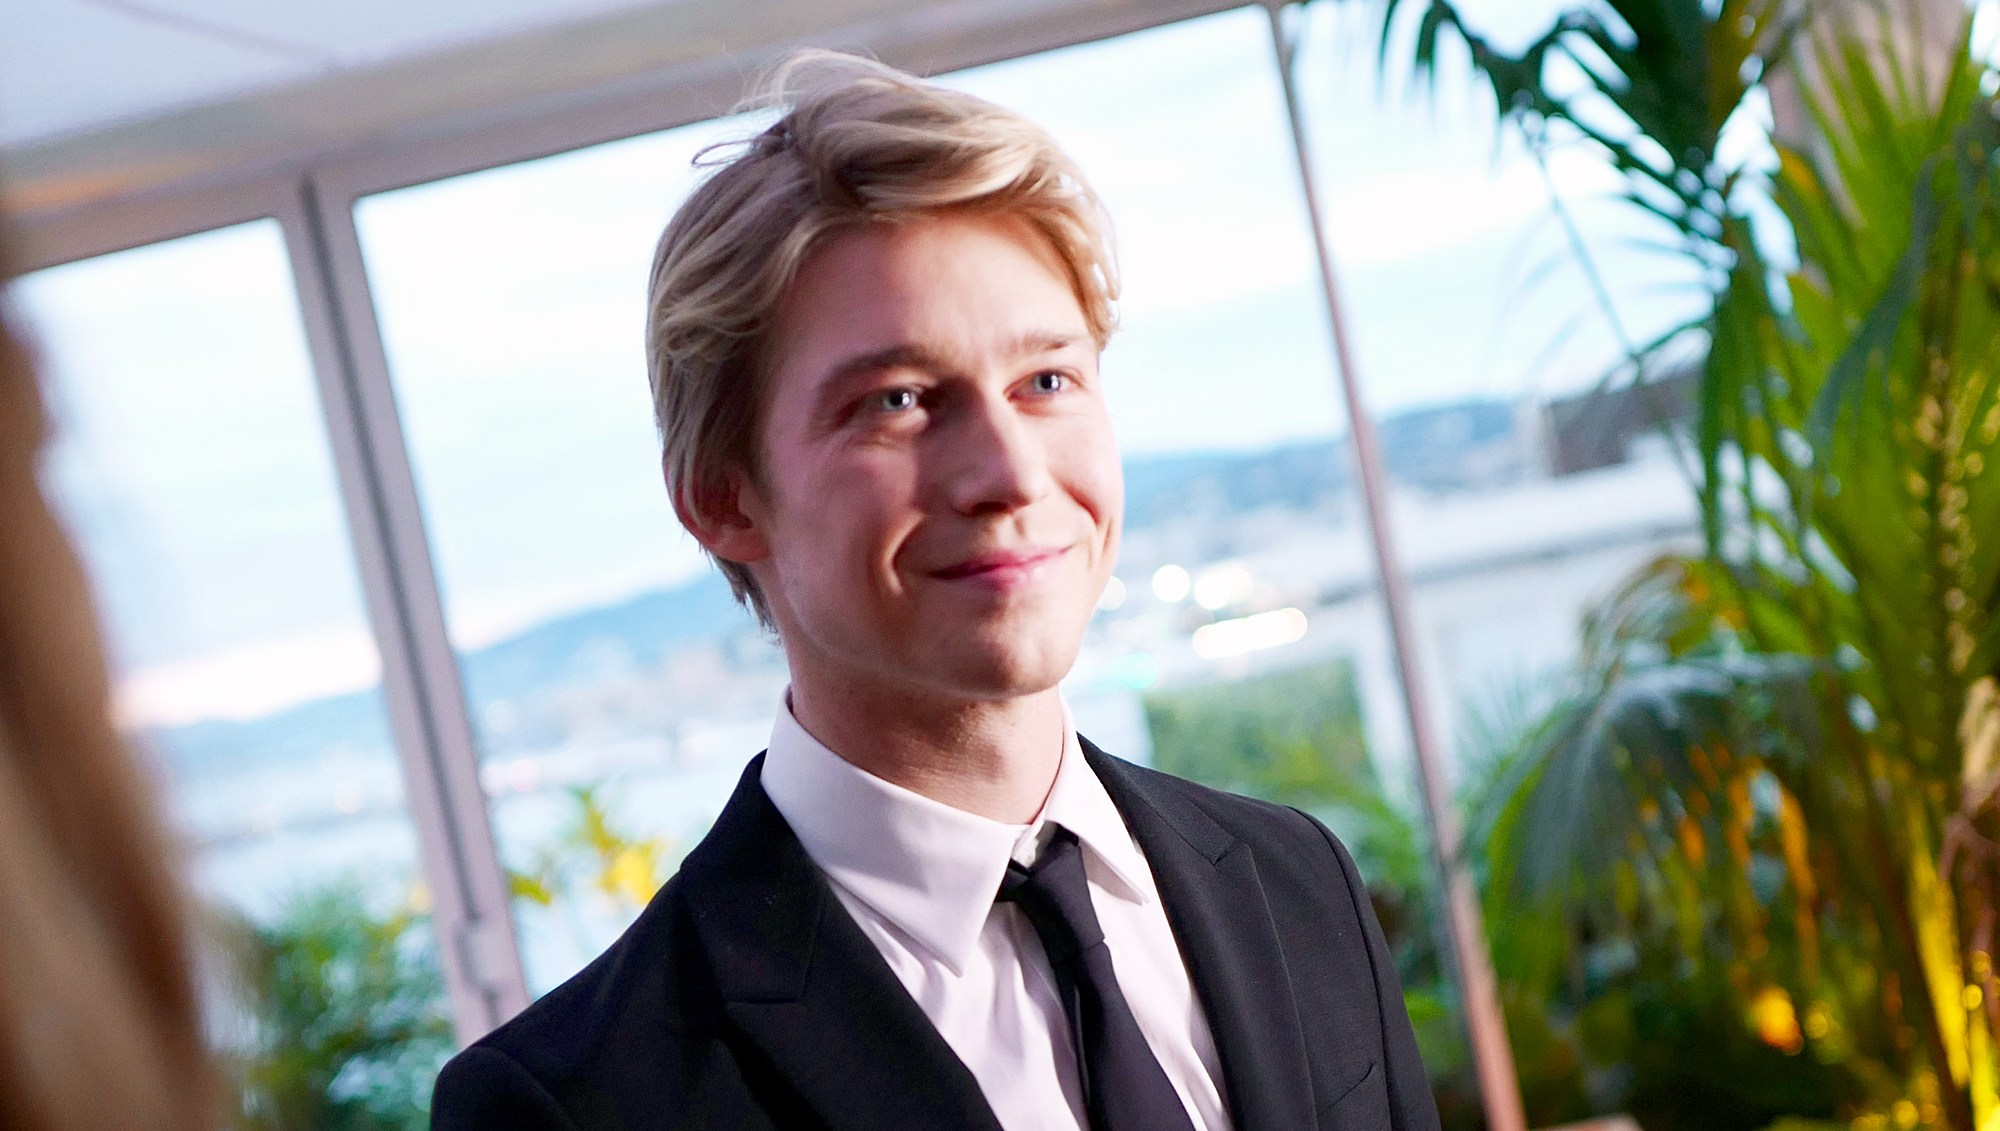 2018 Trophee Chopard laureate Joe Alwyn attends the Trophee Chopard during the 71st annual Cannes Film Festival at Hotel Martinez on May 14, 2018 in Cannes, France.